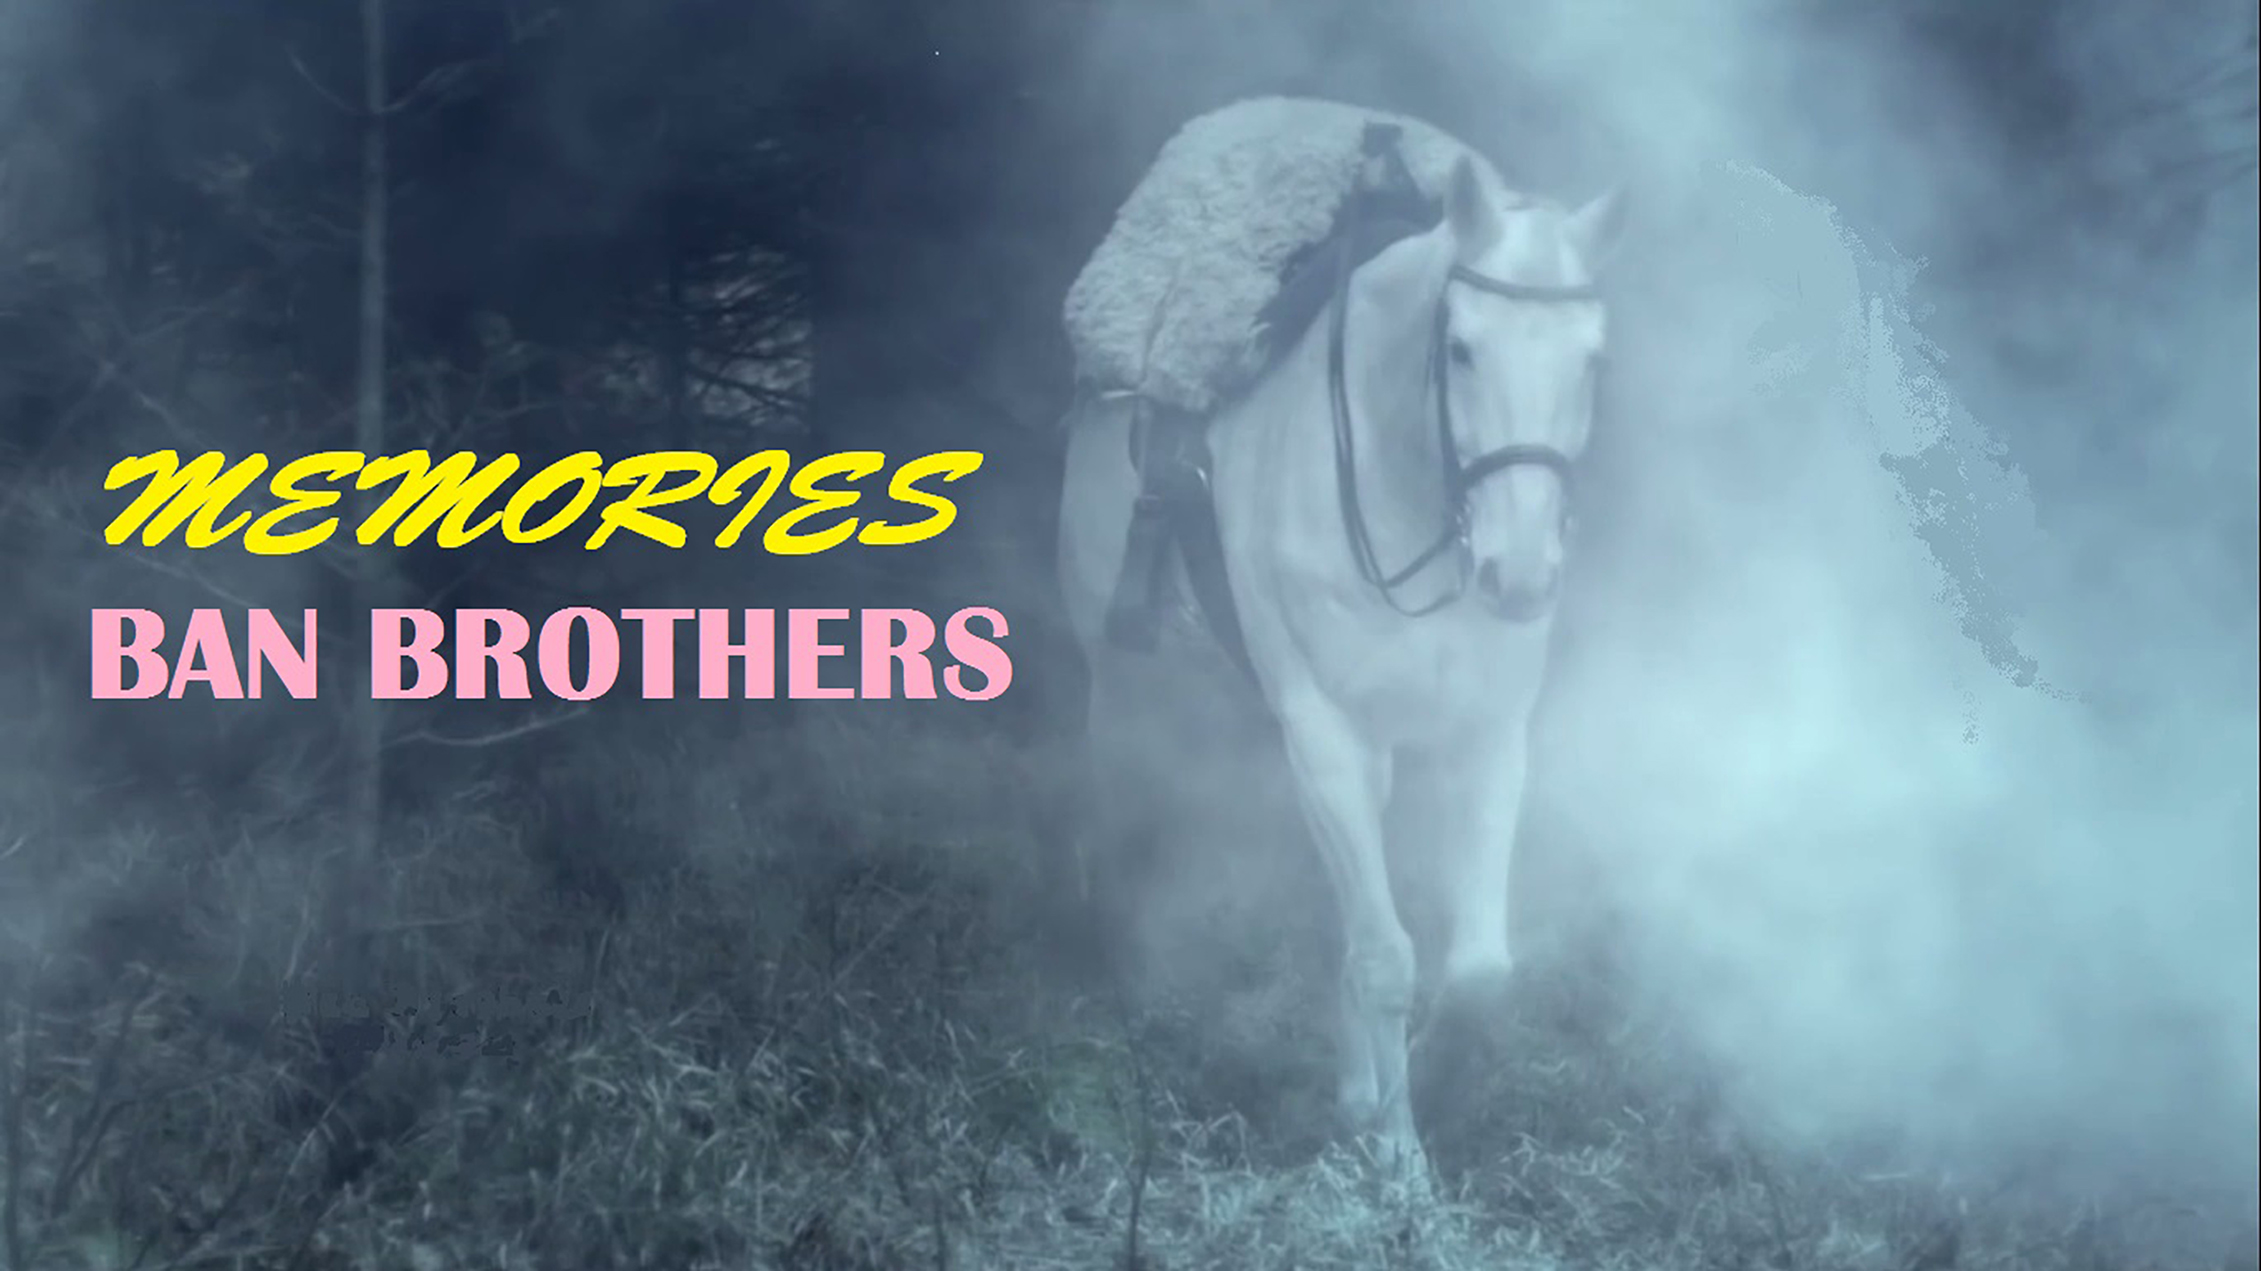 New World Fusion Release from Ban Brothers 'Memories'